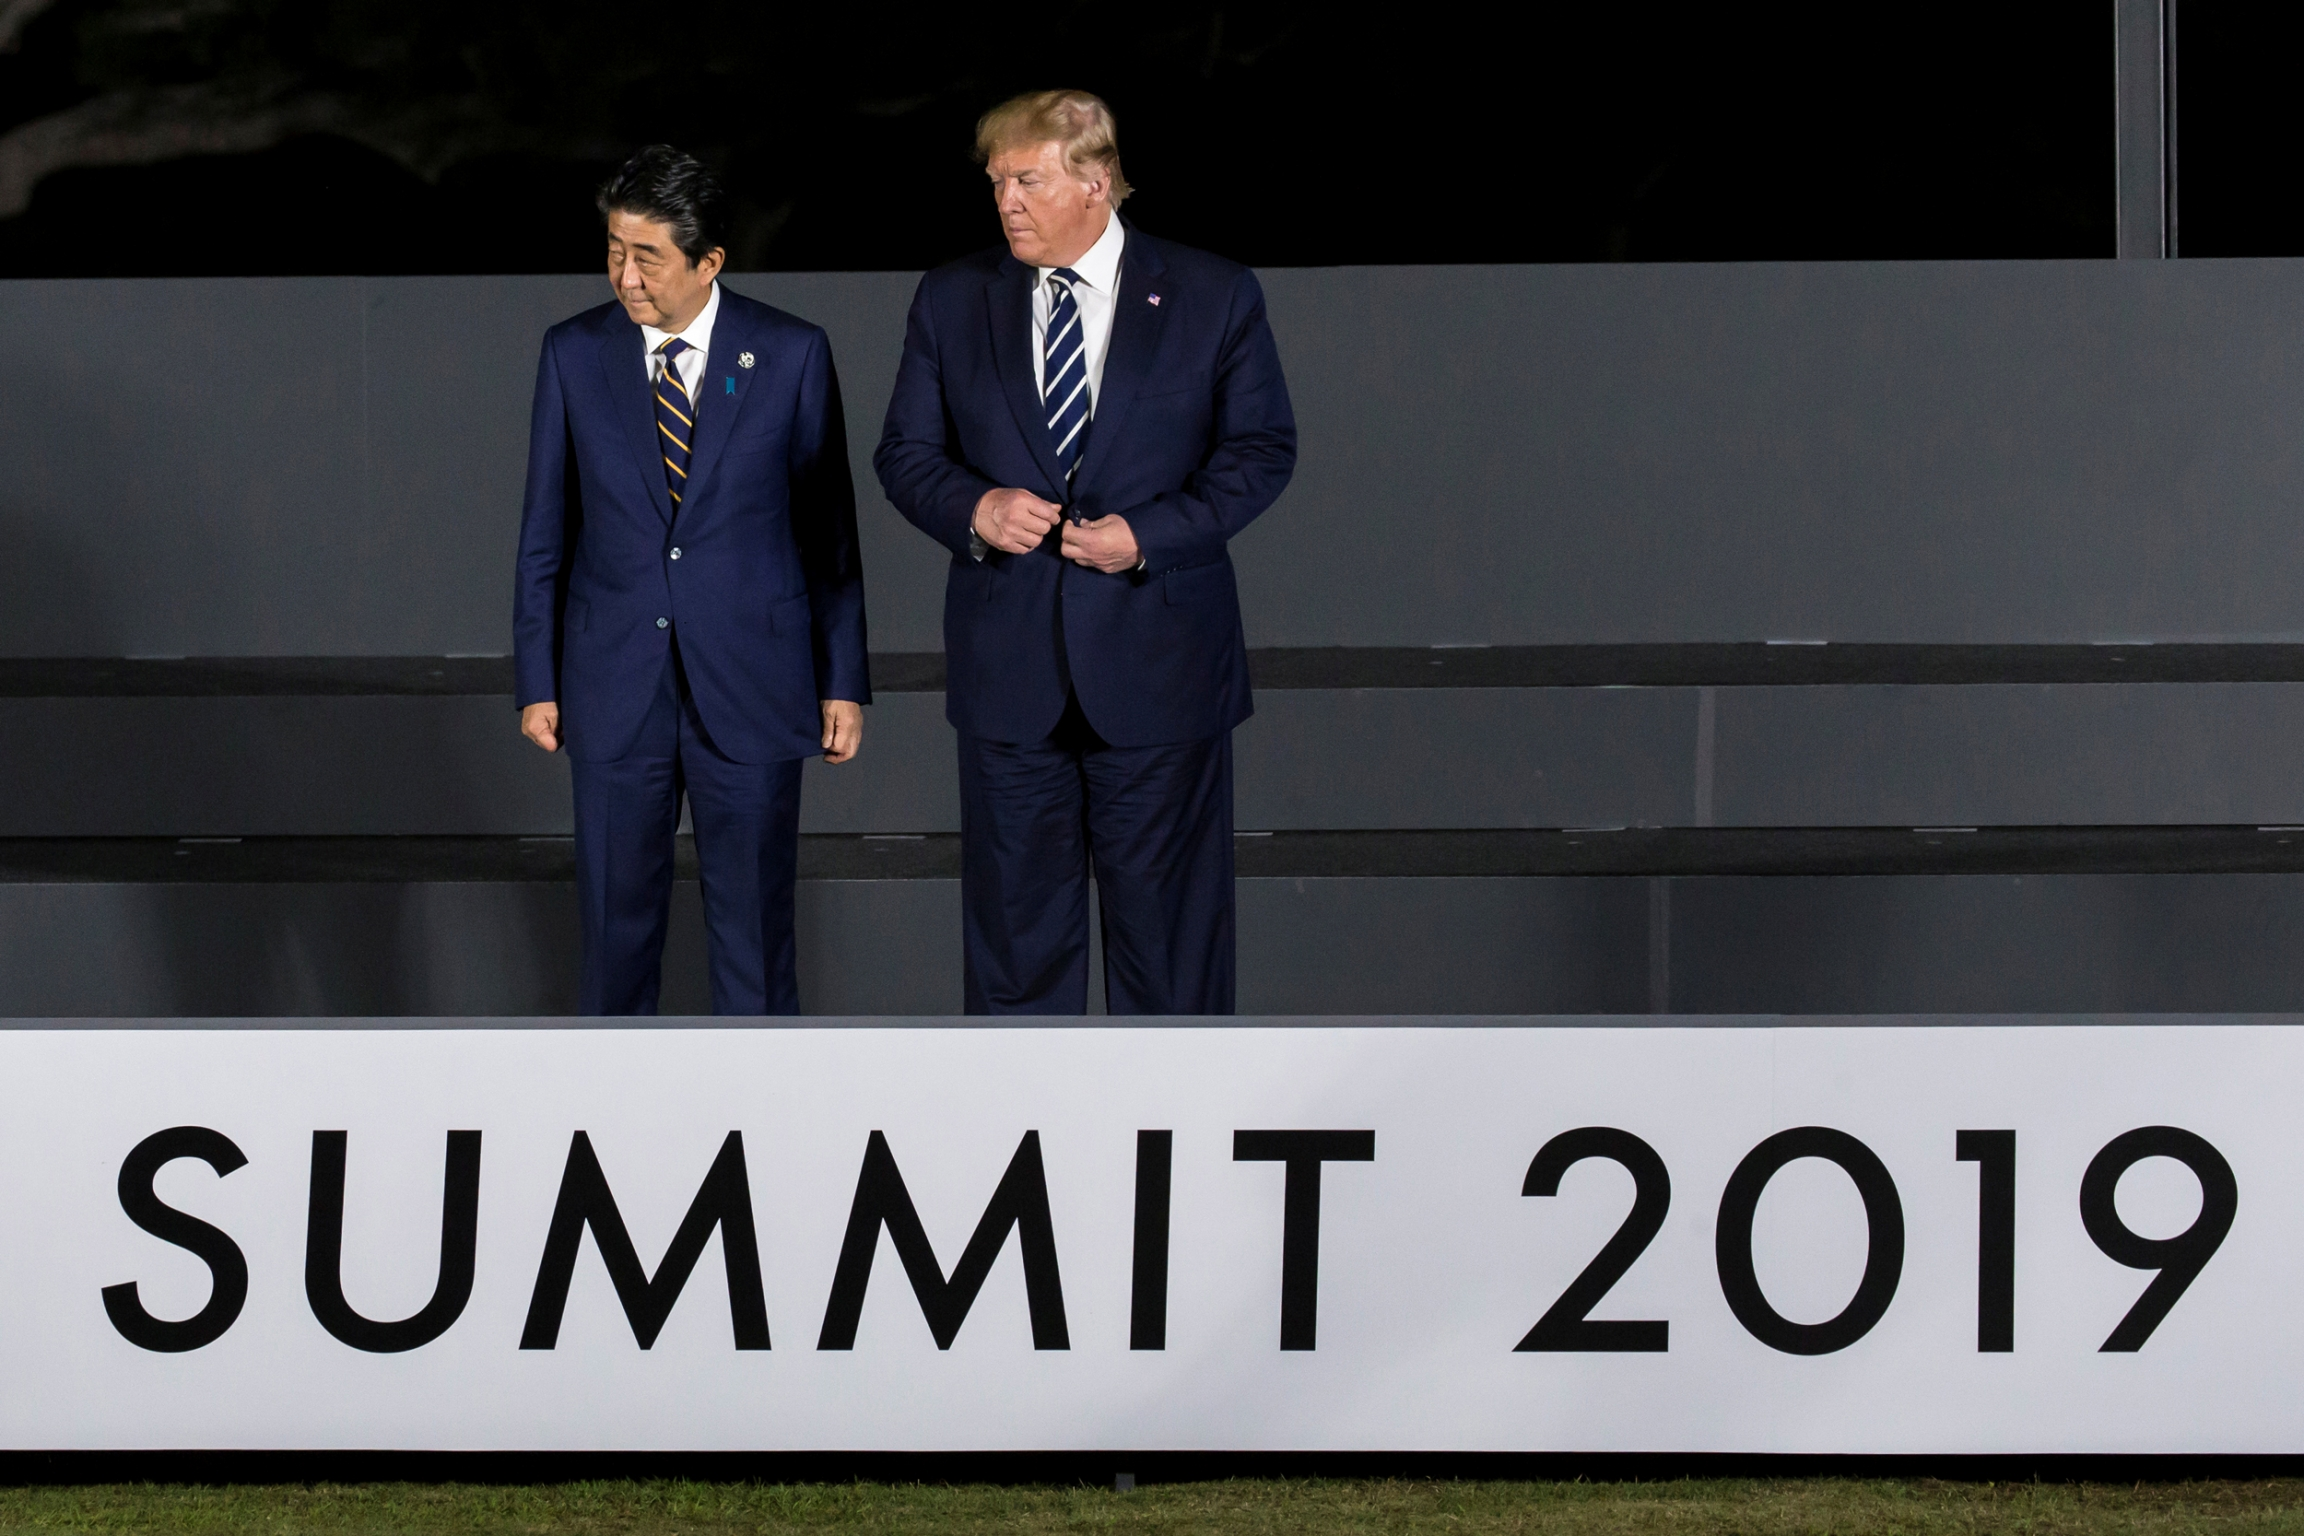 US President Donald Trump stands with Japanese Prime Minister Shinzō Abe above a sign that says Summit 2019